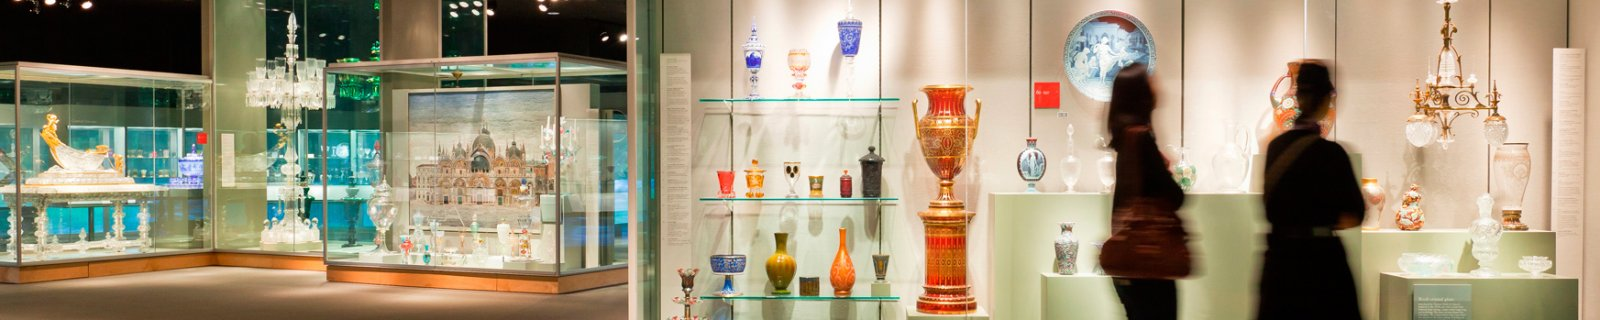 The Museum's Glass Collection showcases more than 35 centuries of glass artistry